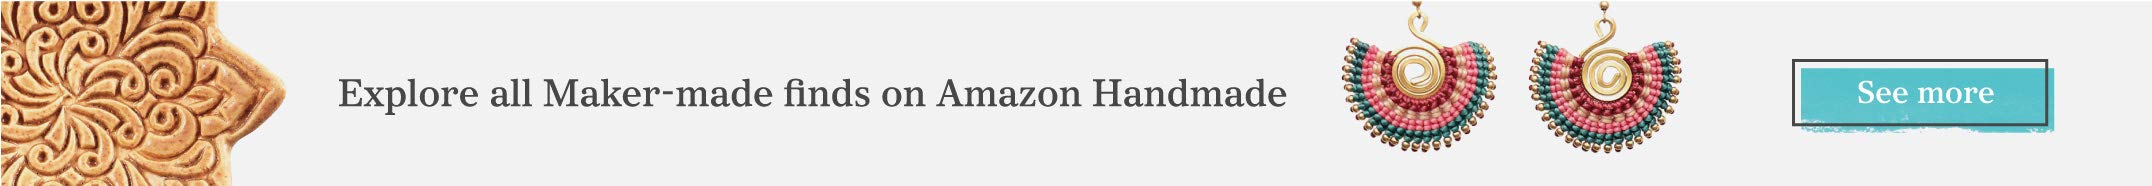 Explore all Maker-made finds on Amazon Handmade